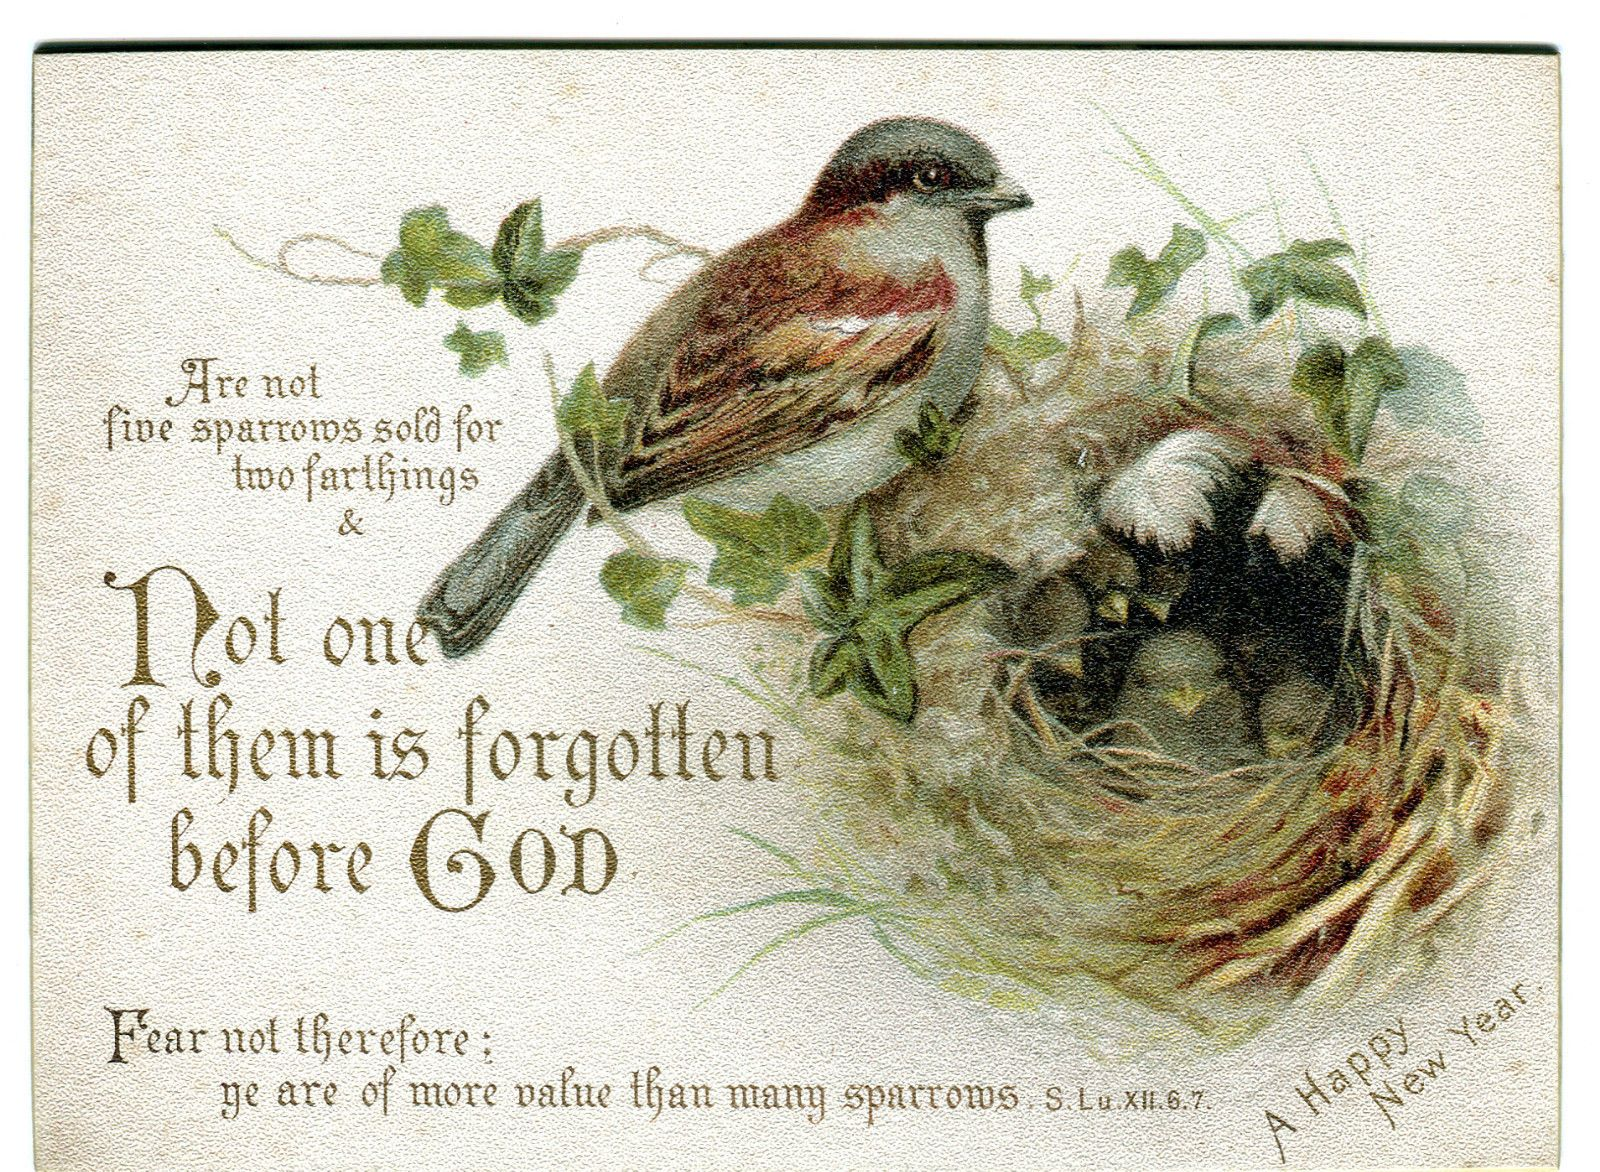 Pin on ReLiGiOuS PoSTCArDS